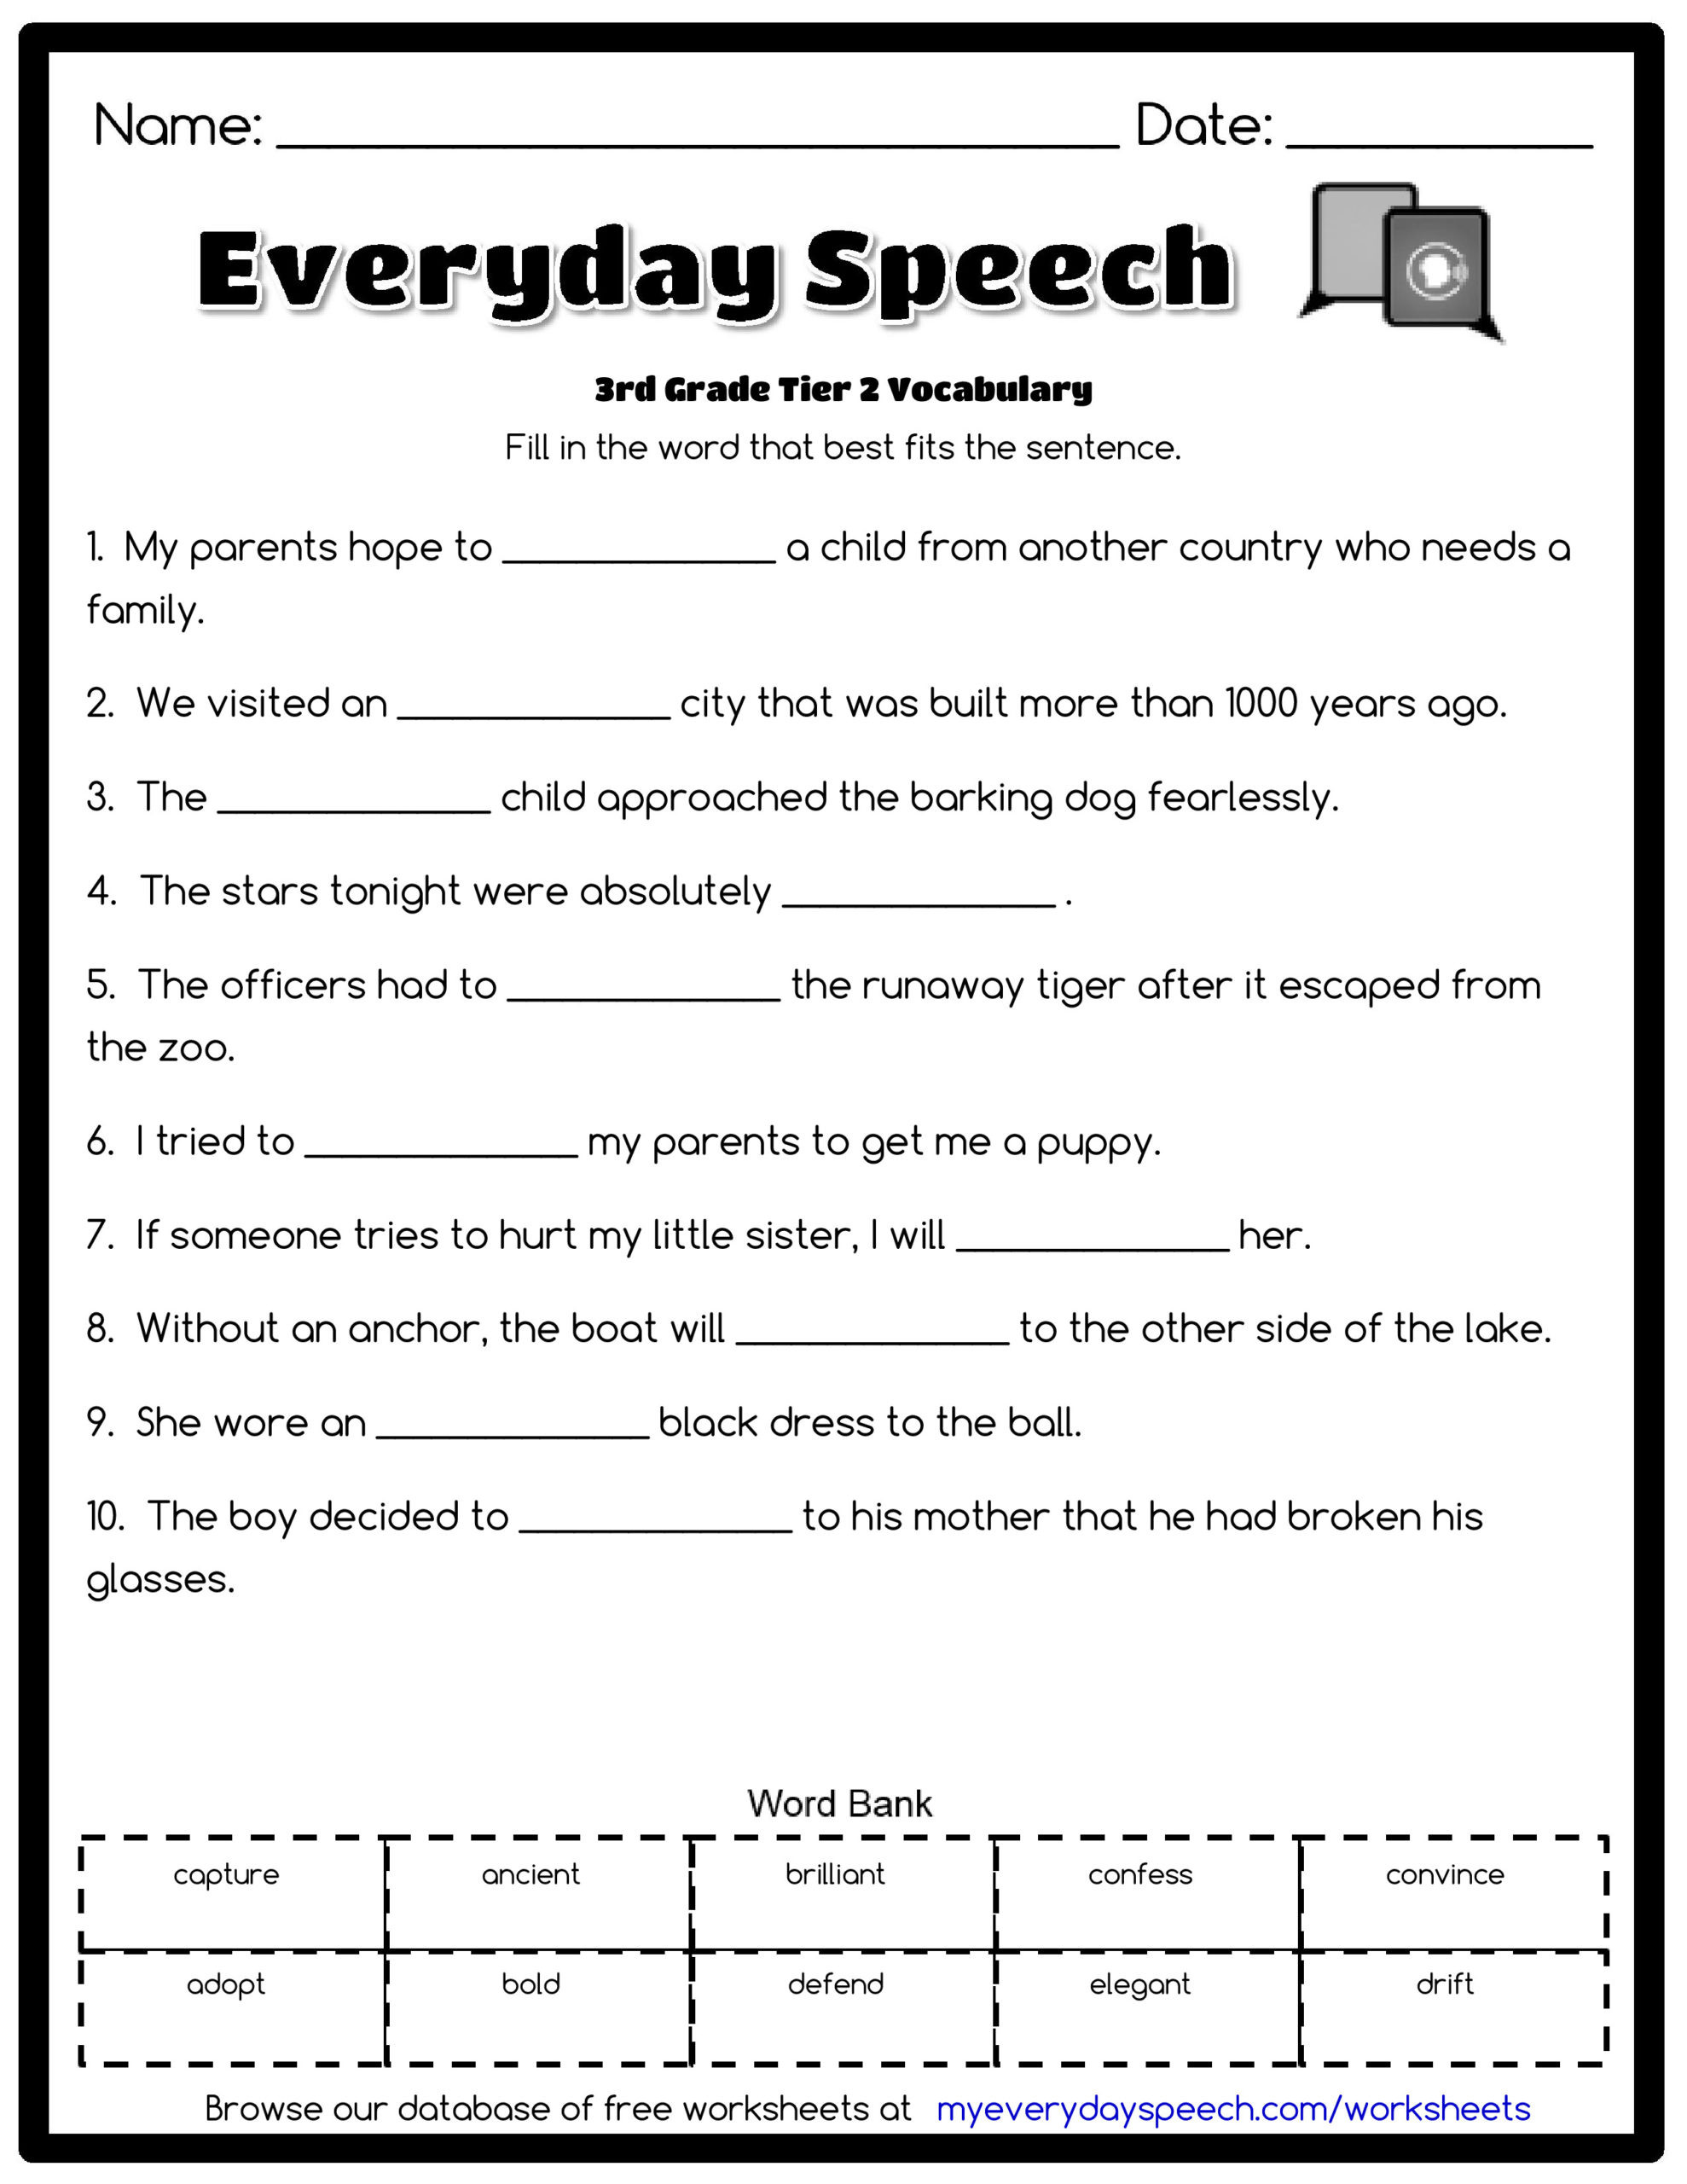 First Grade Vocabulary Worksheets 3rd Grade Vocabulary Worksheets for Free Third Math Goo S